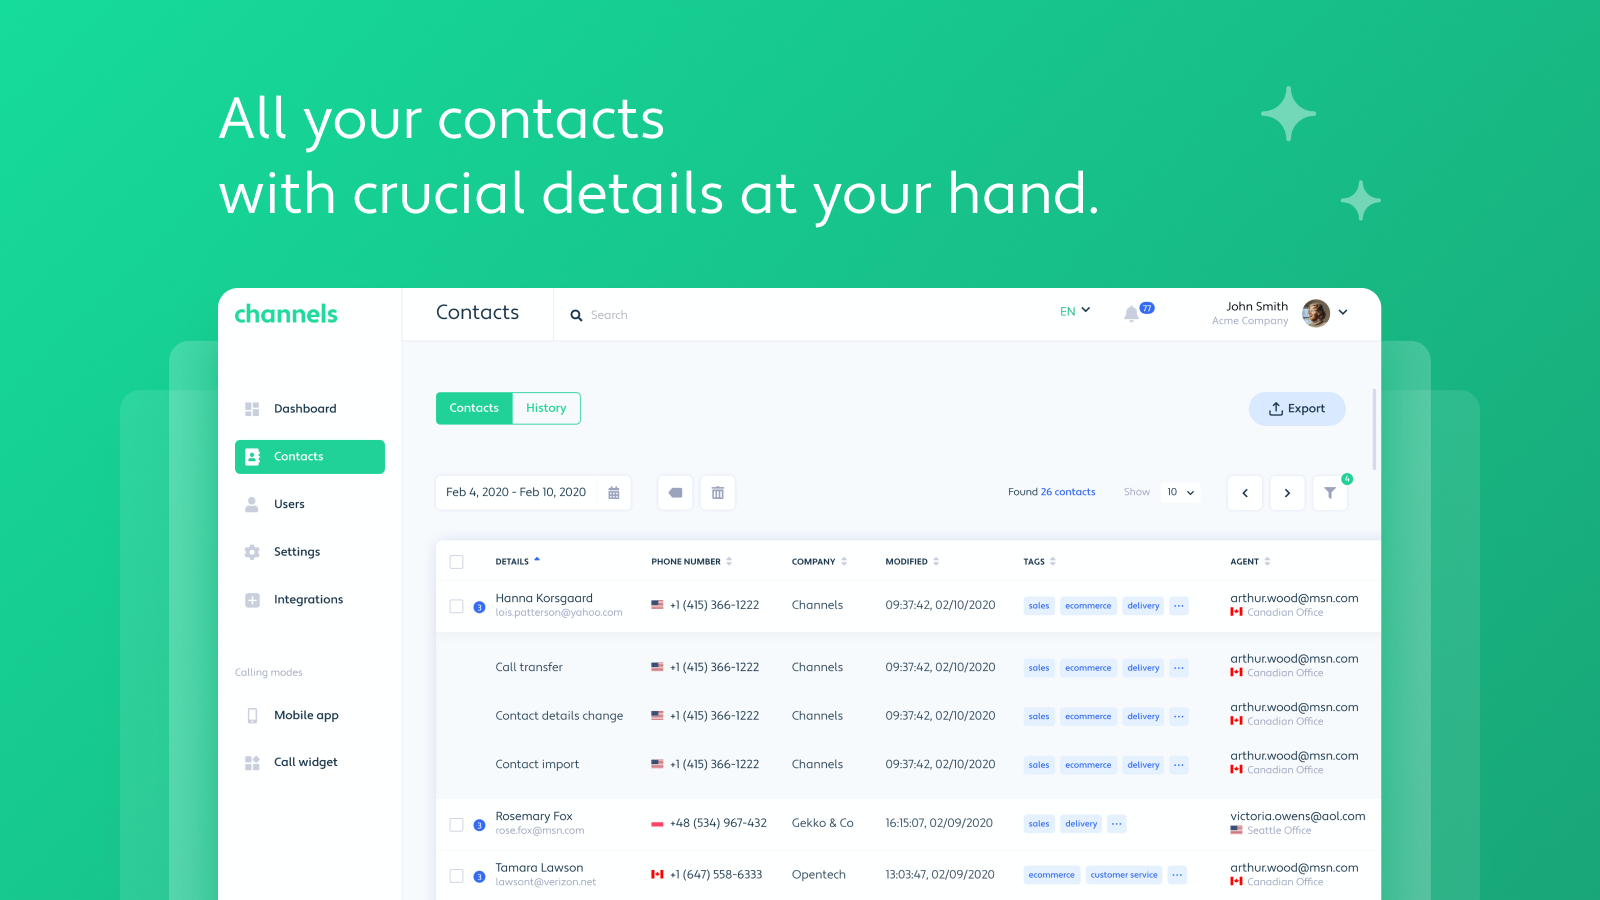 Contacts - organize and manage all of the most important customer details such as past touchpoints and call recordings.